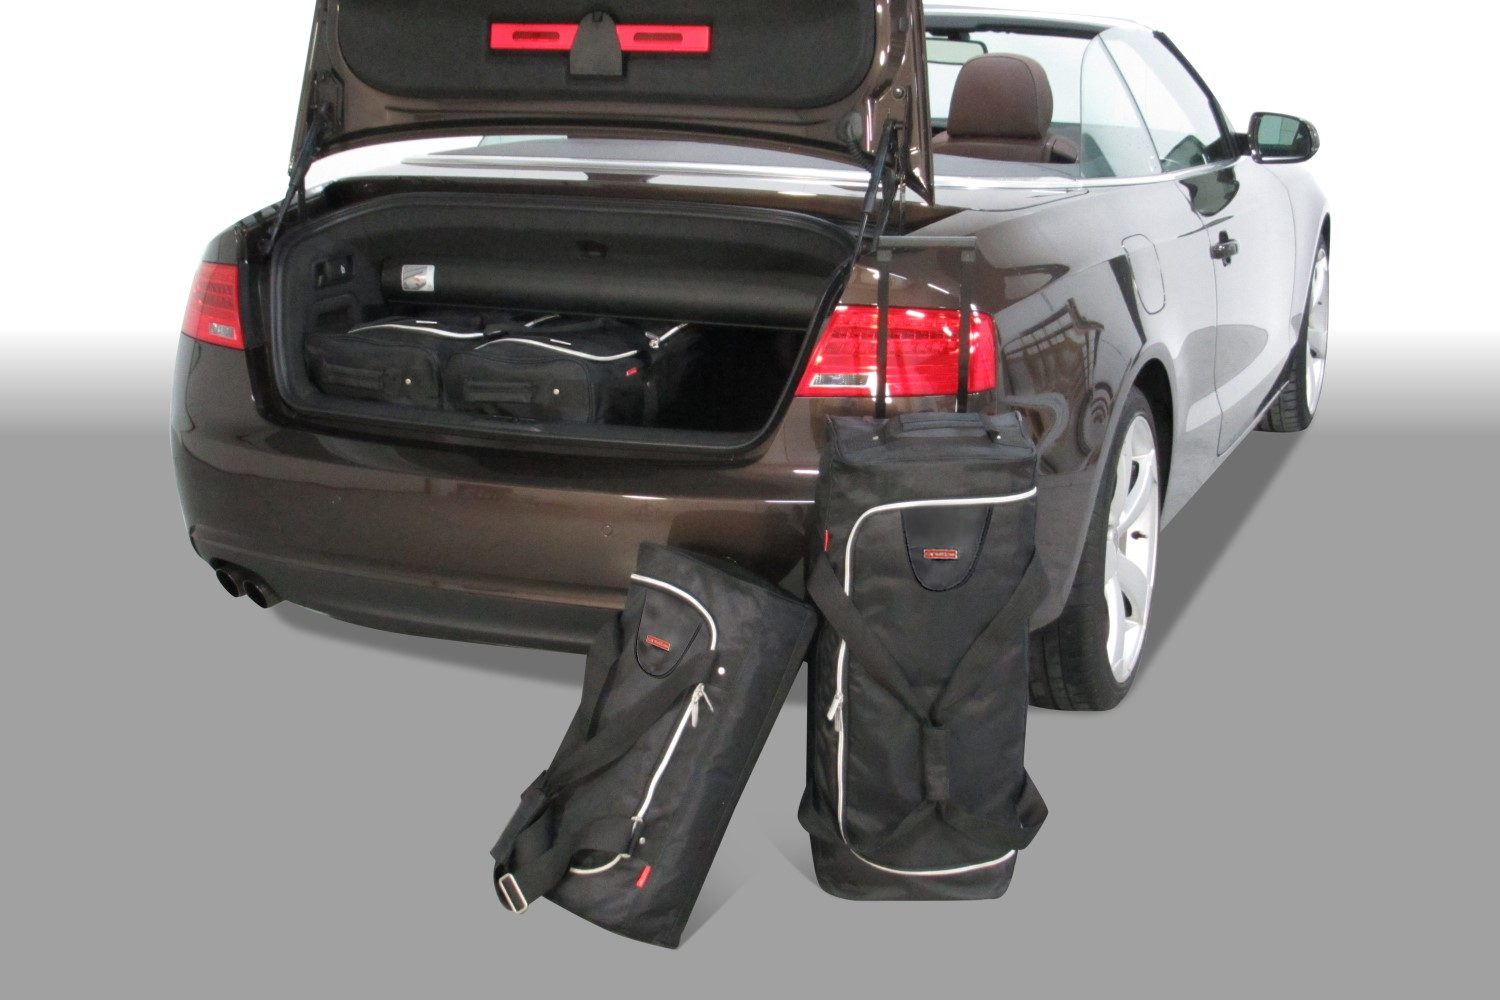 Audi A5 Cabriolet (8F7) 2009-2017 Car-Bags.com travel bag set (1)